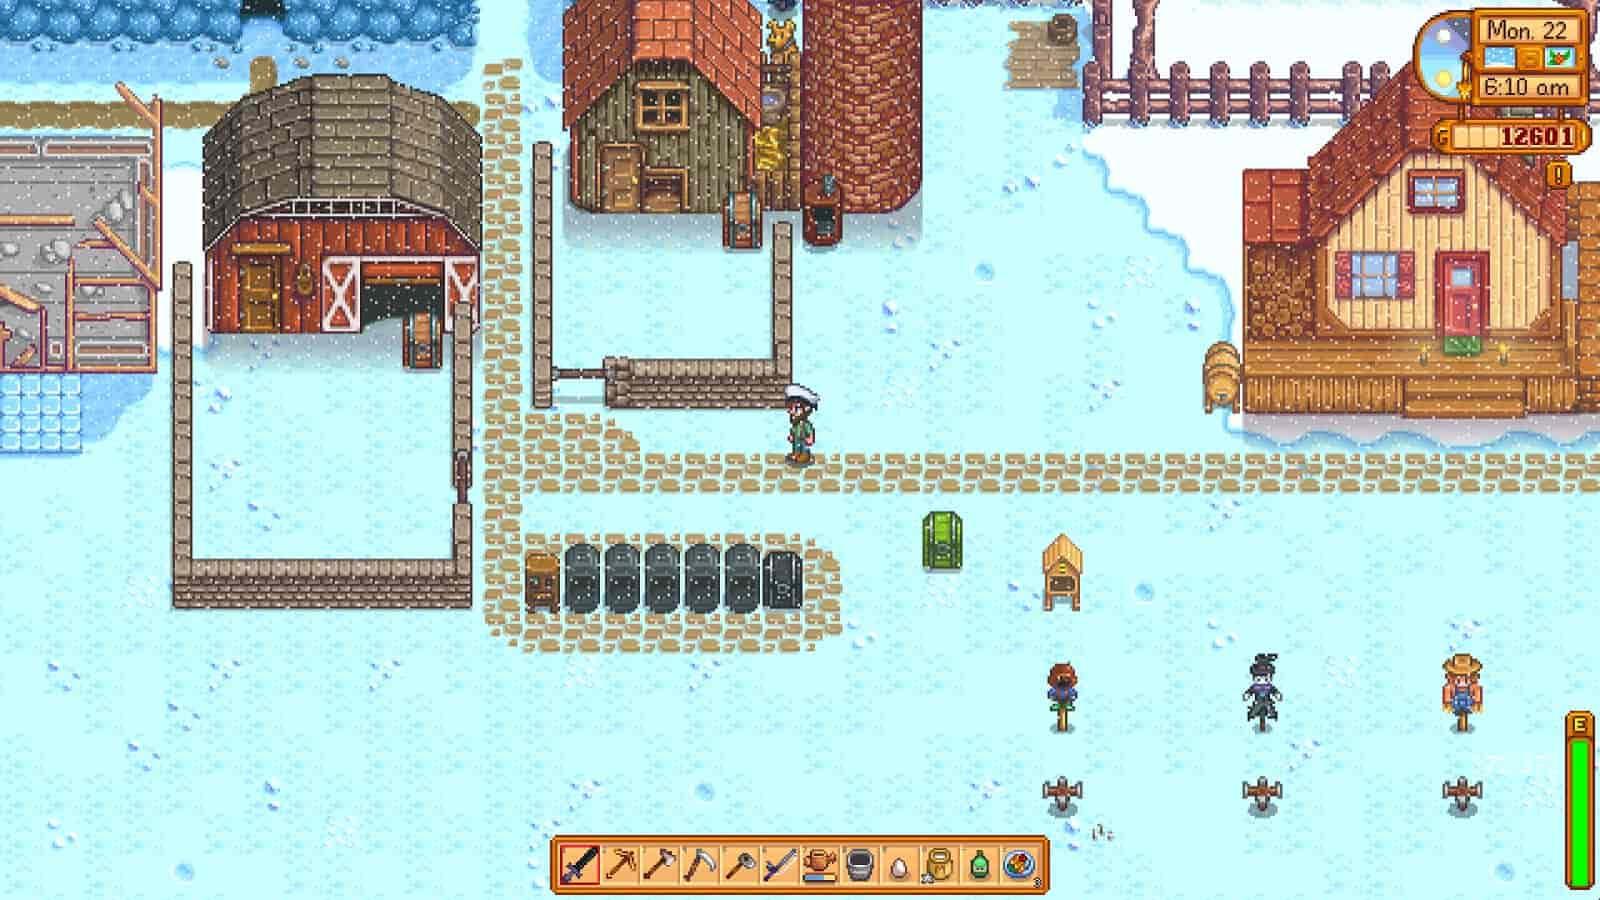 stardew valley gameplay during winter and snow